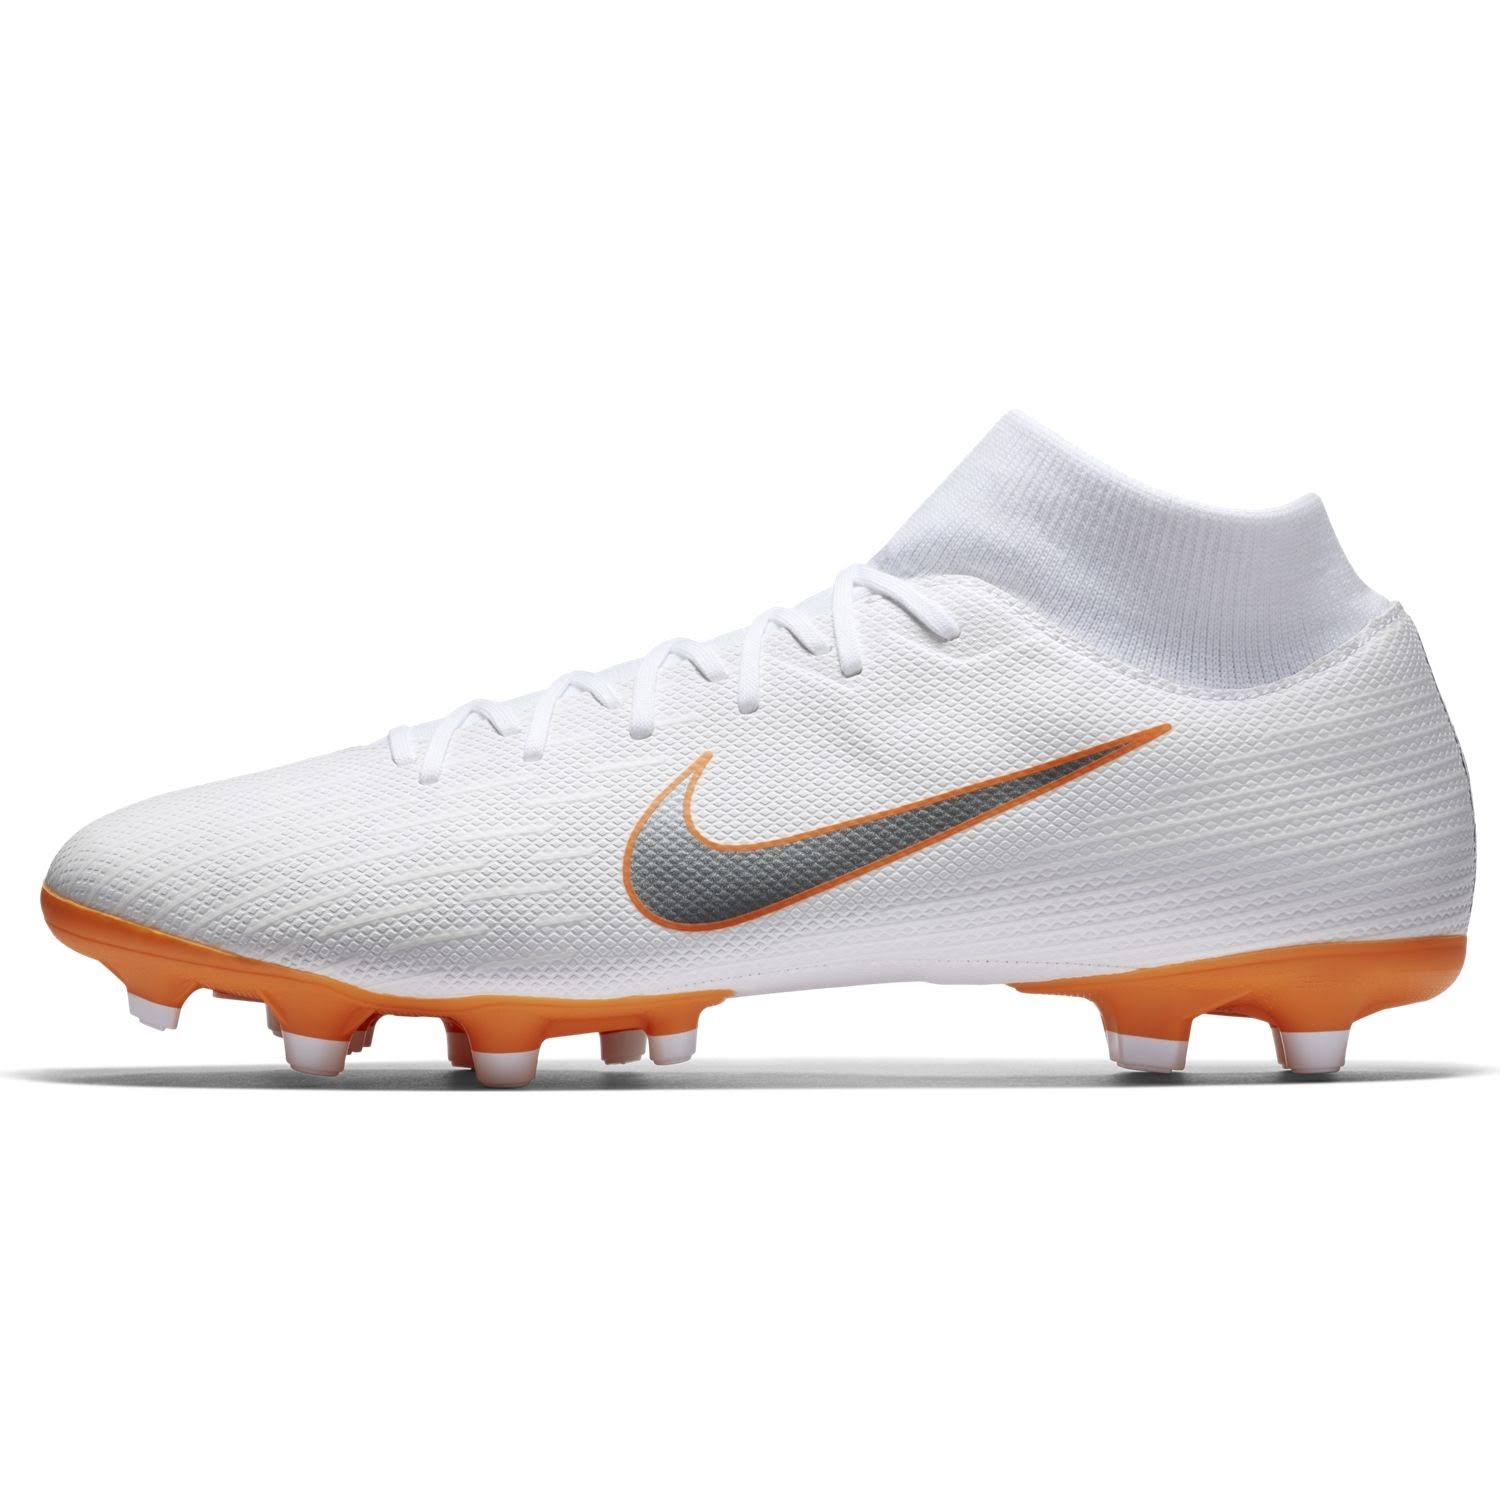 Df Academy Nike Fg Cleats Size Mens 10 Mercurial Superfly White Soccer wtrq7t4E